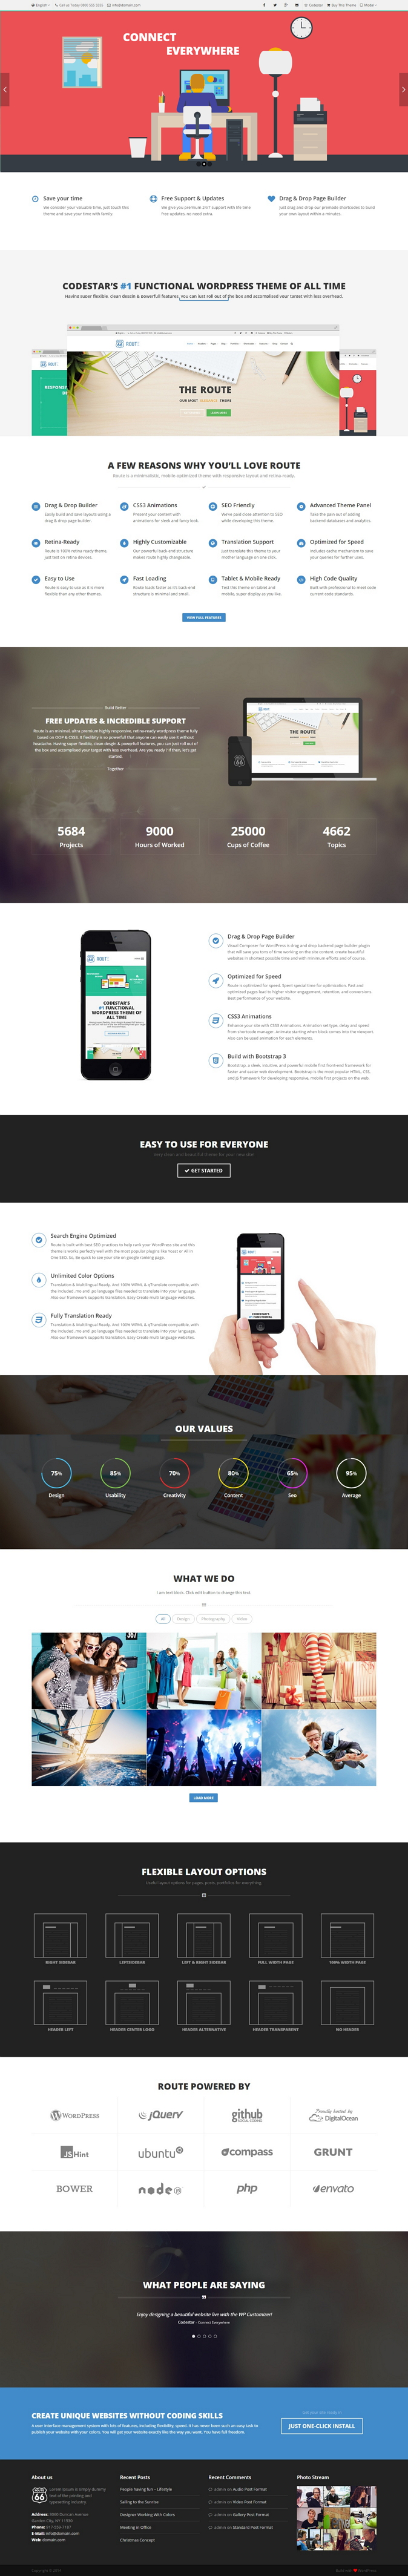 Route is an minimal, ultra premium highly responsive, retina-ready WordPress theme fully based o ...